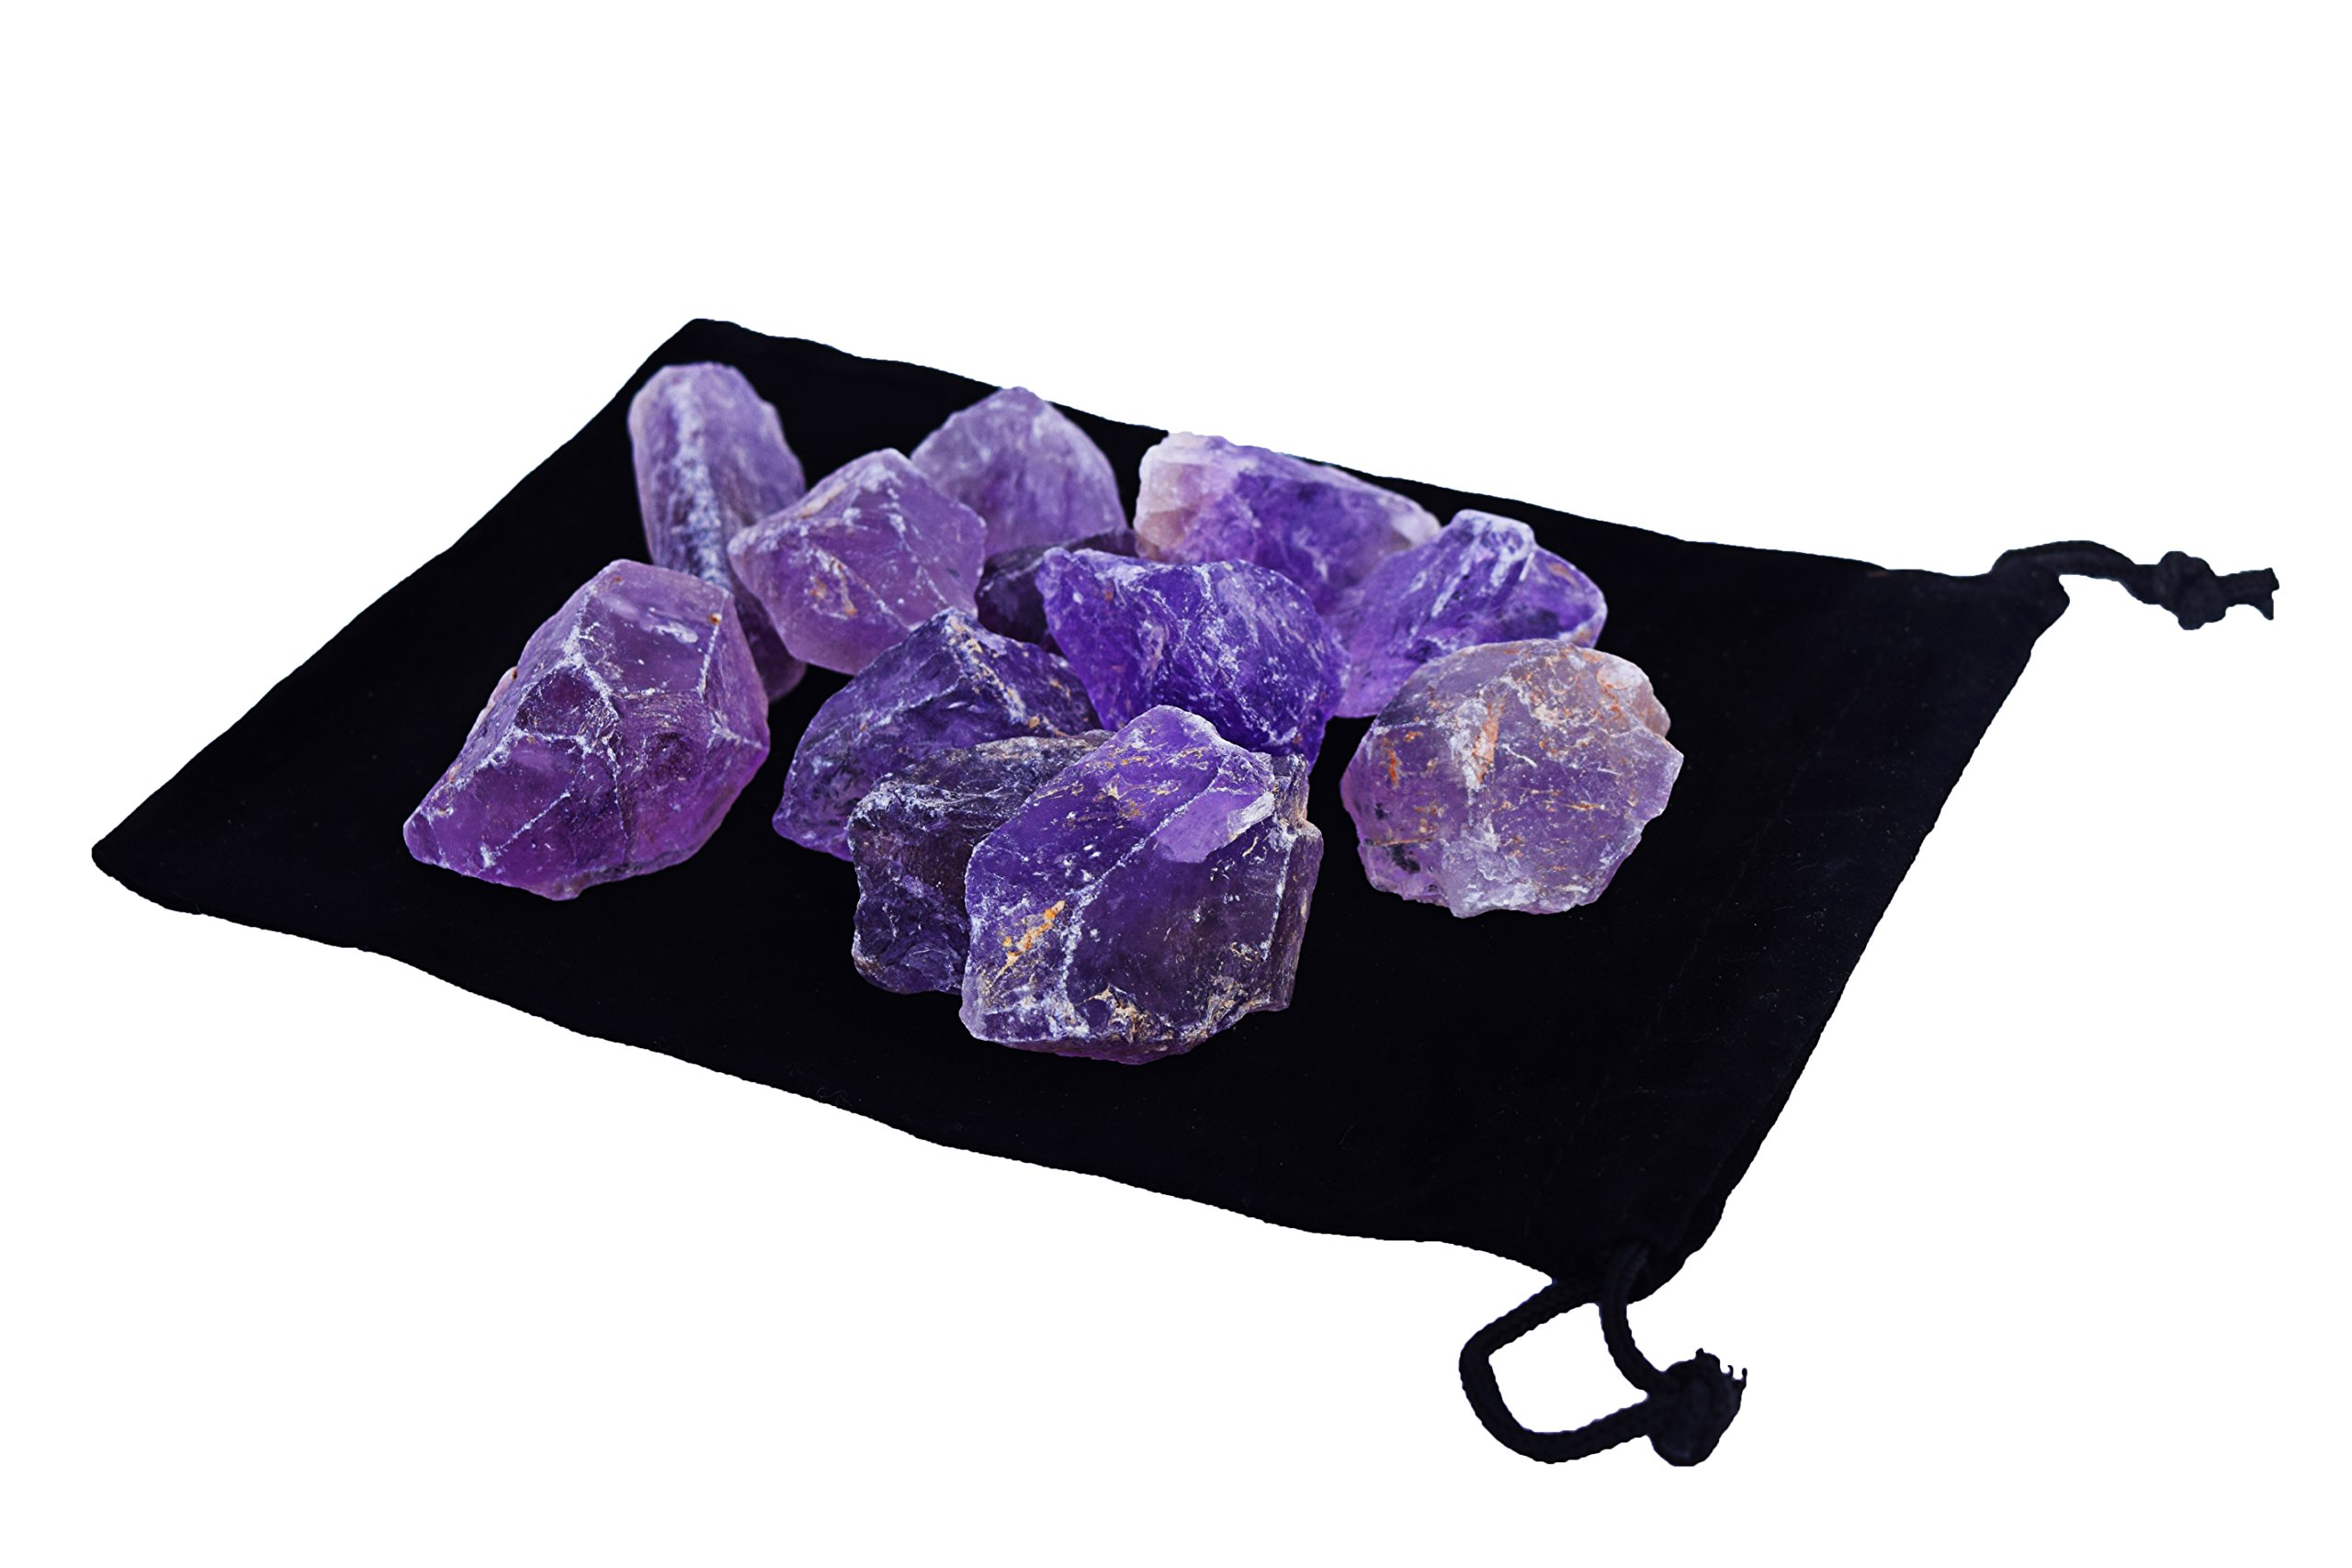 Zentron Crystals 1/2 Pound Rough Amethyst in Velvet Bag Large Raw Gemstones for Wire Wrapping, Polishing, Tumbling, Reiki and Wicca by Zentron Crystal Collection